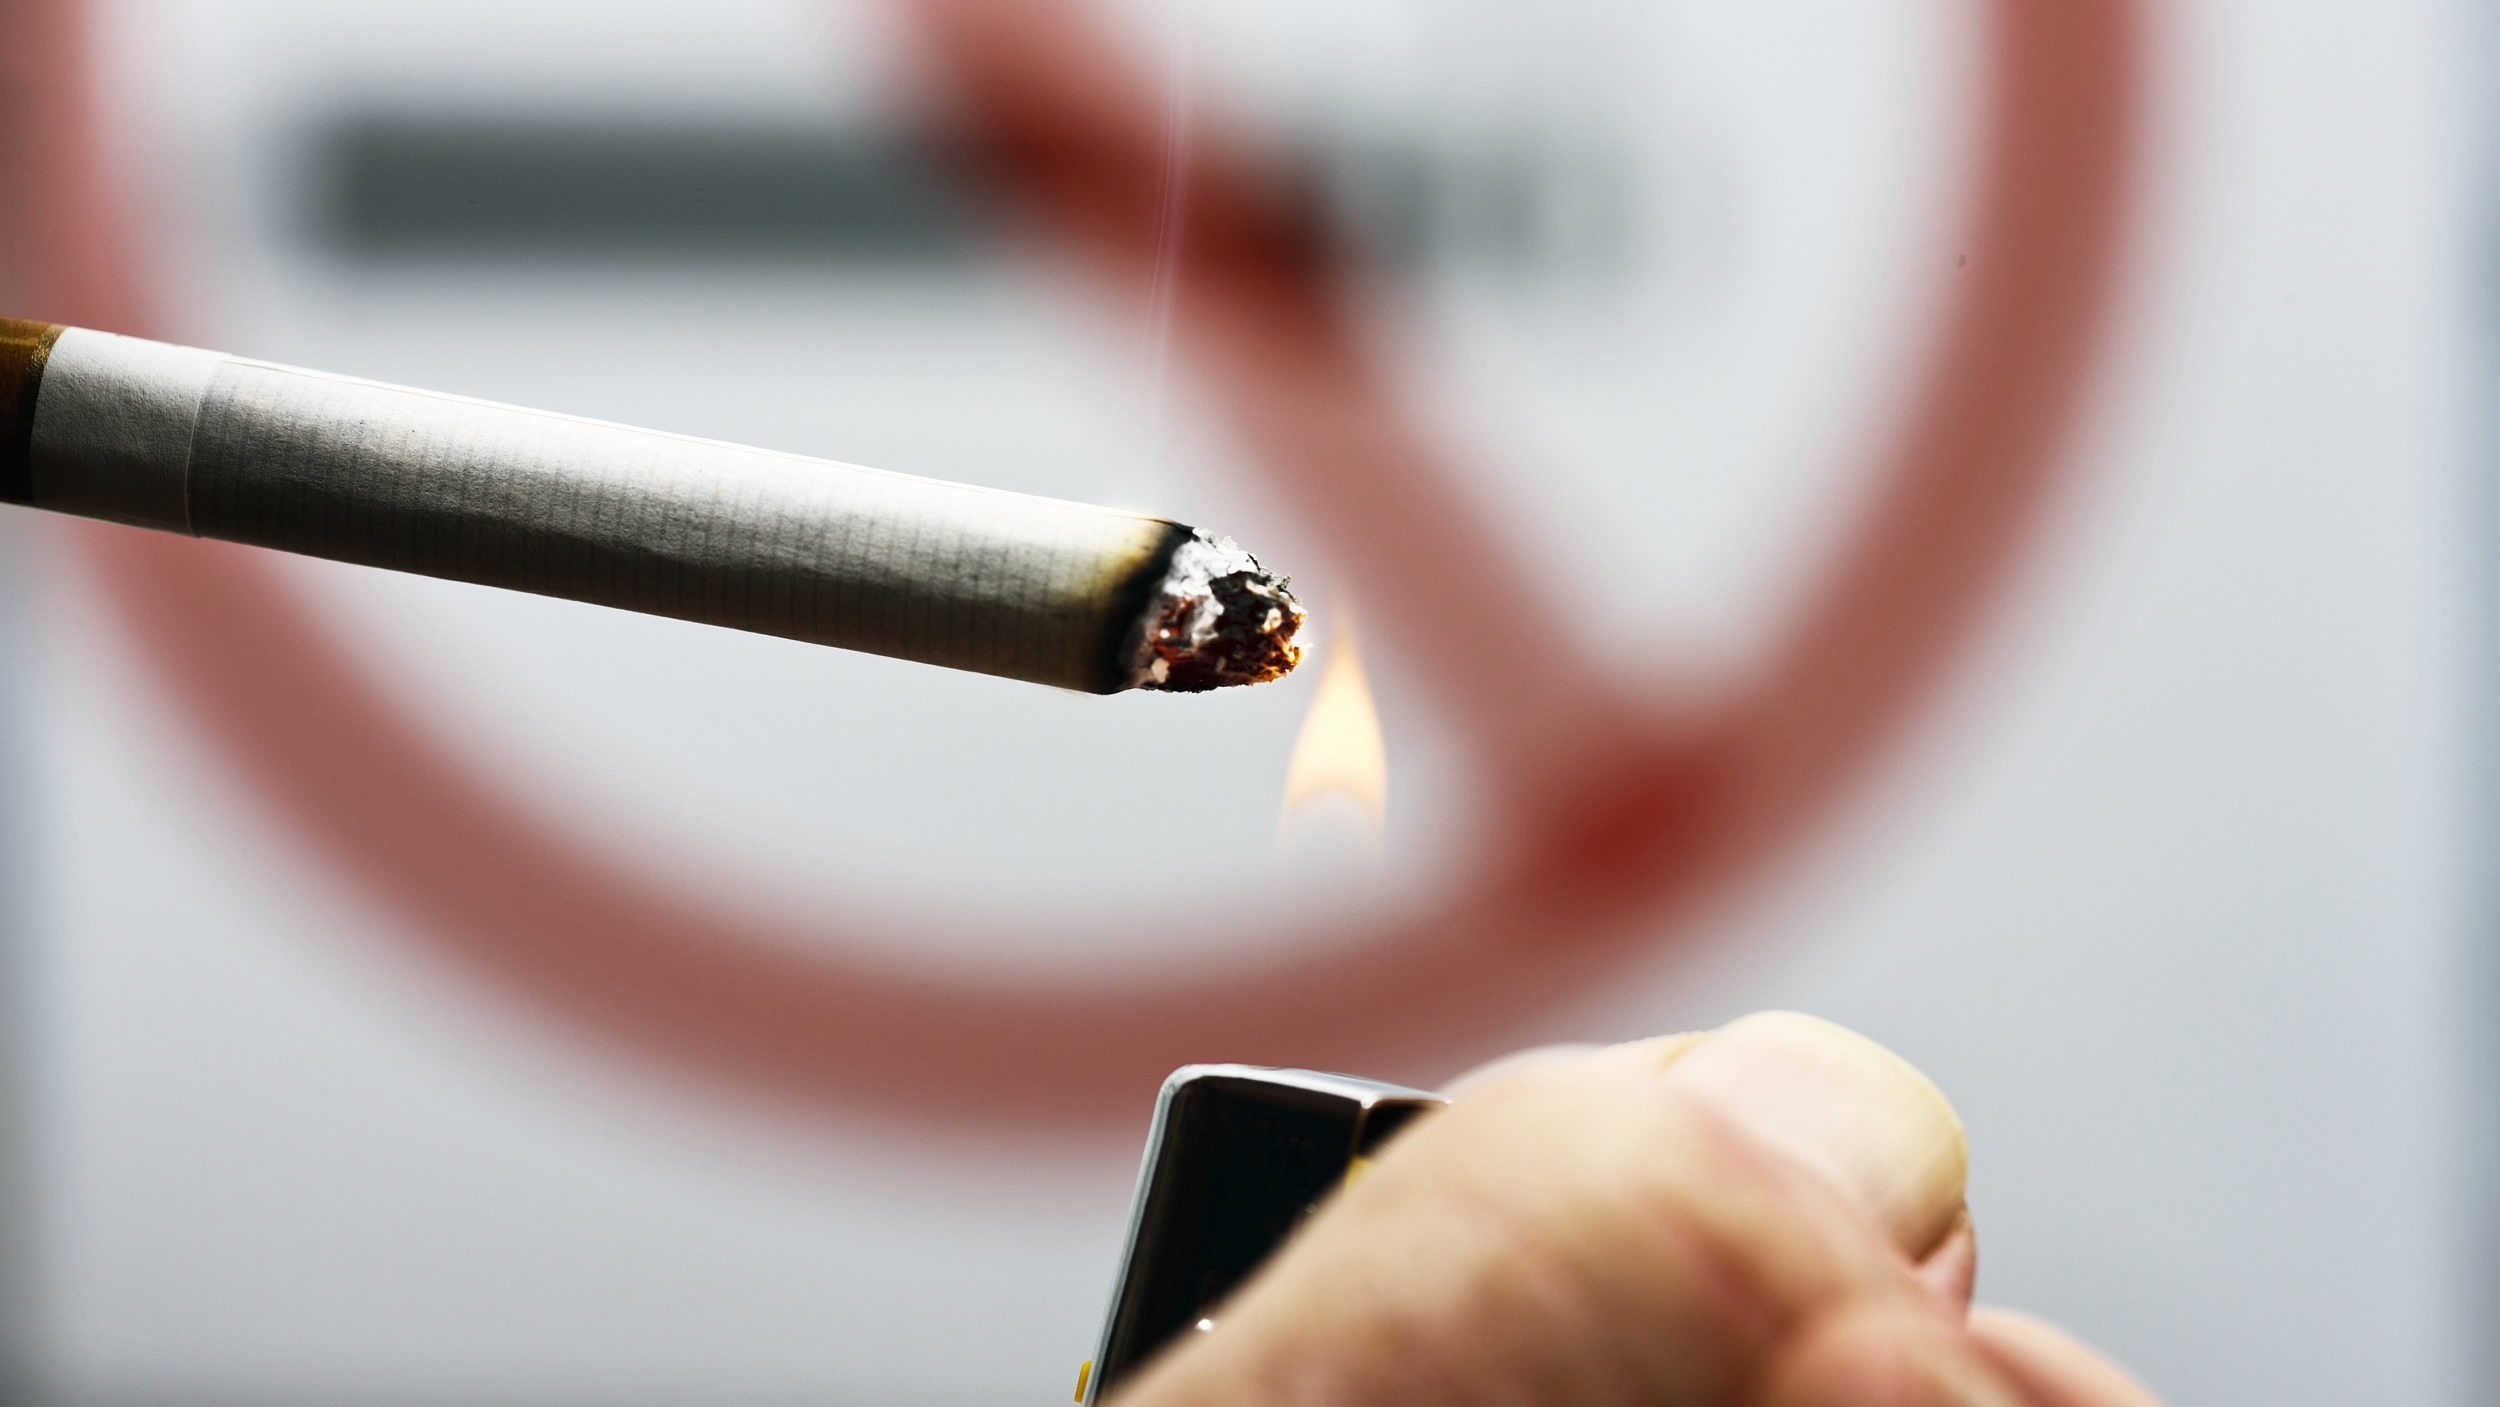 Chinese tobacco authorities seize counterfeit, smuggled cigarettes